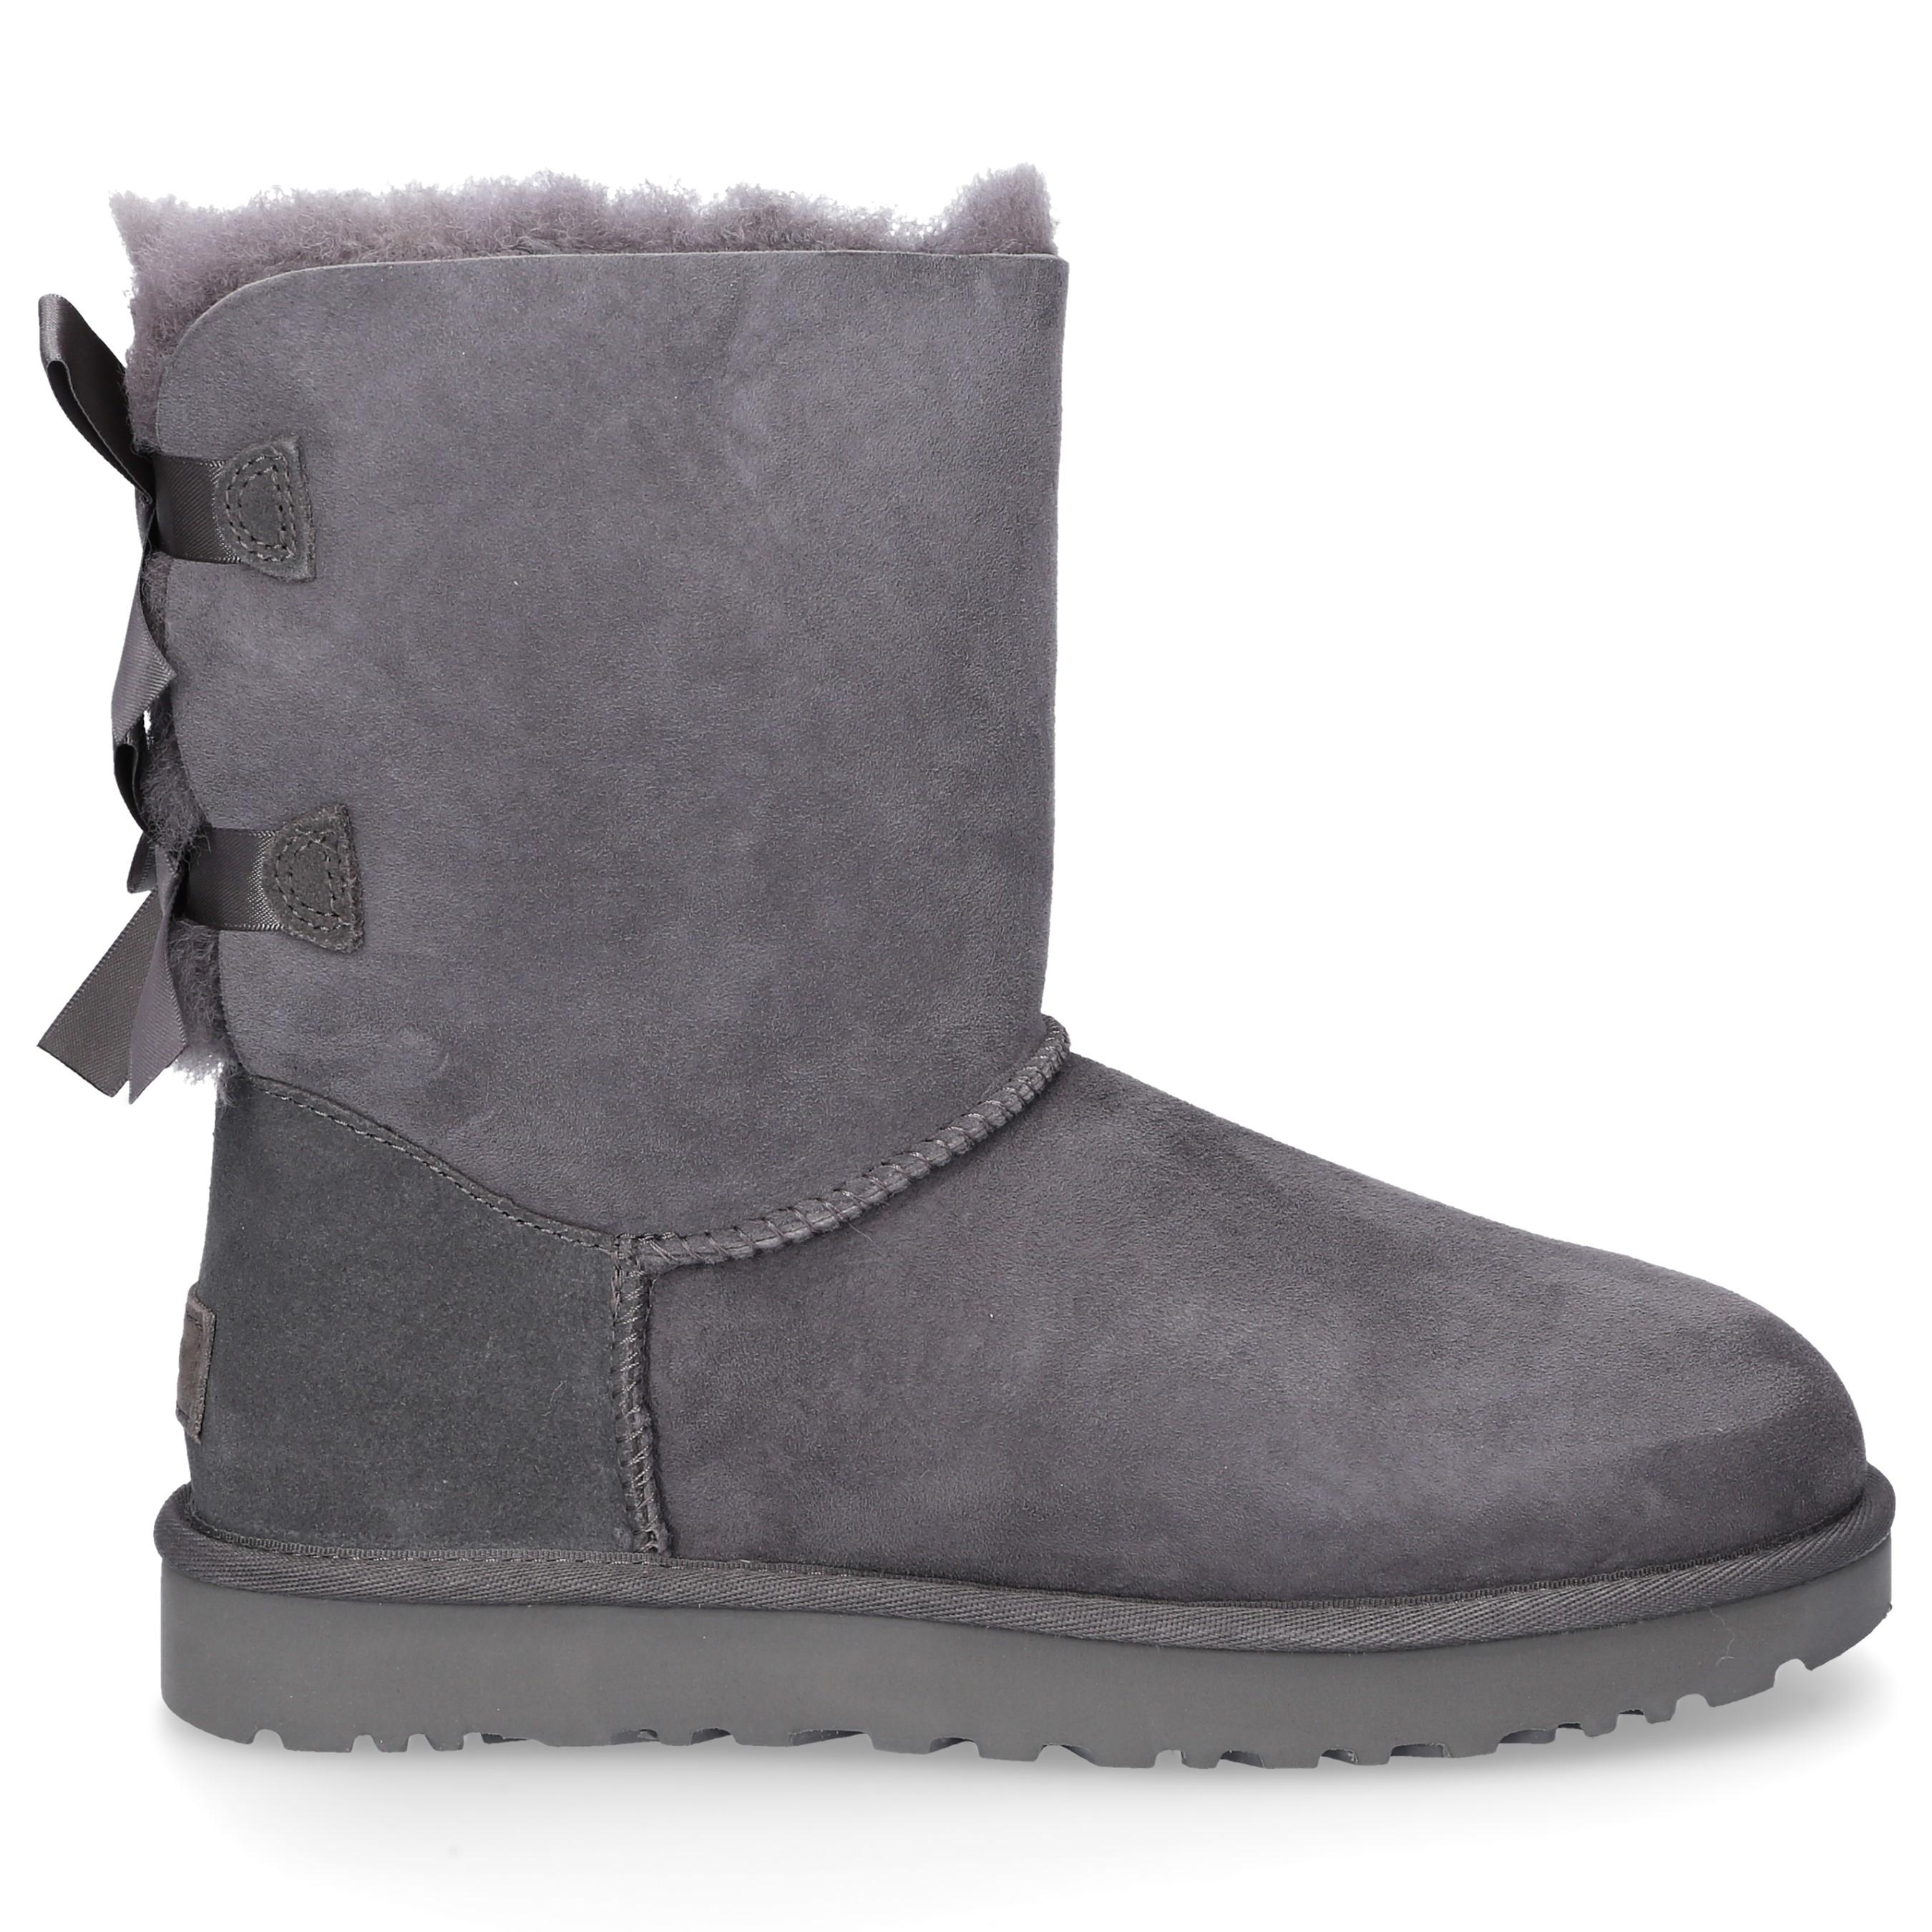 2adfcd702d4 Lyst - UGG Ankle Boots Grey Bailey in Gray